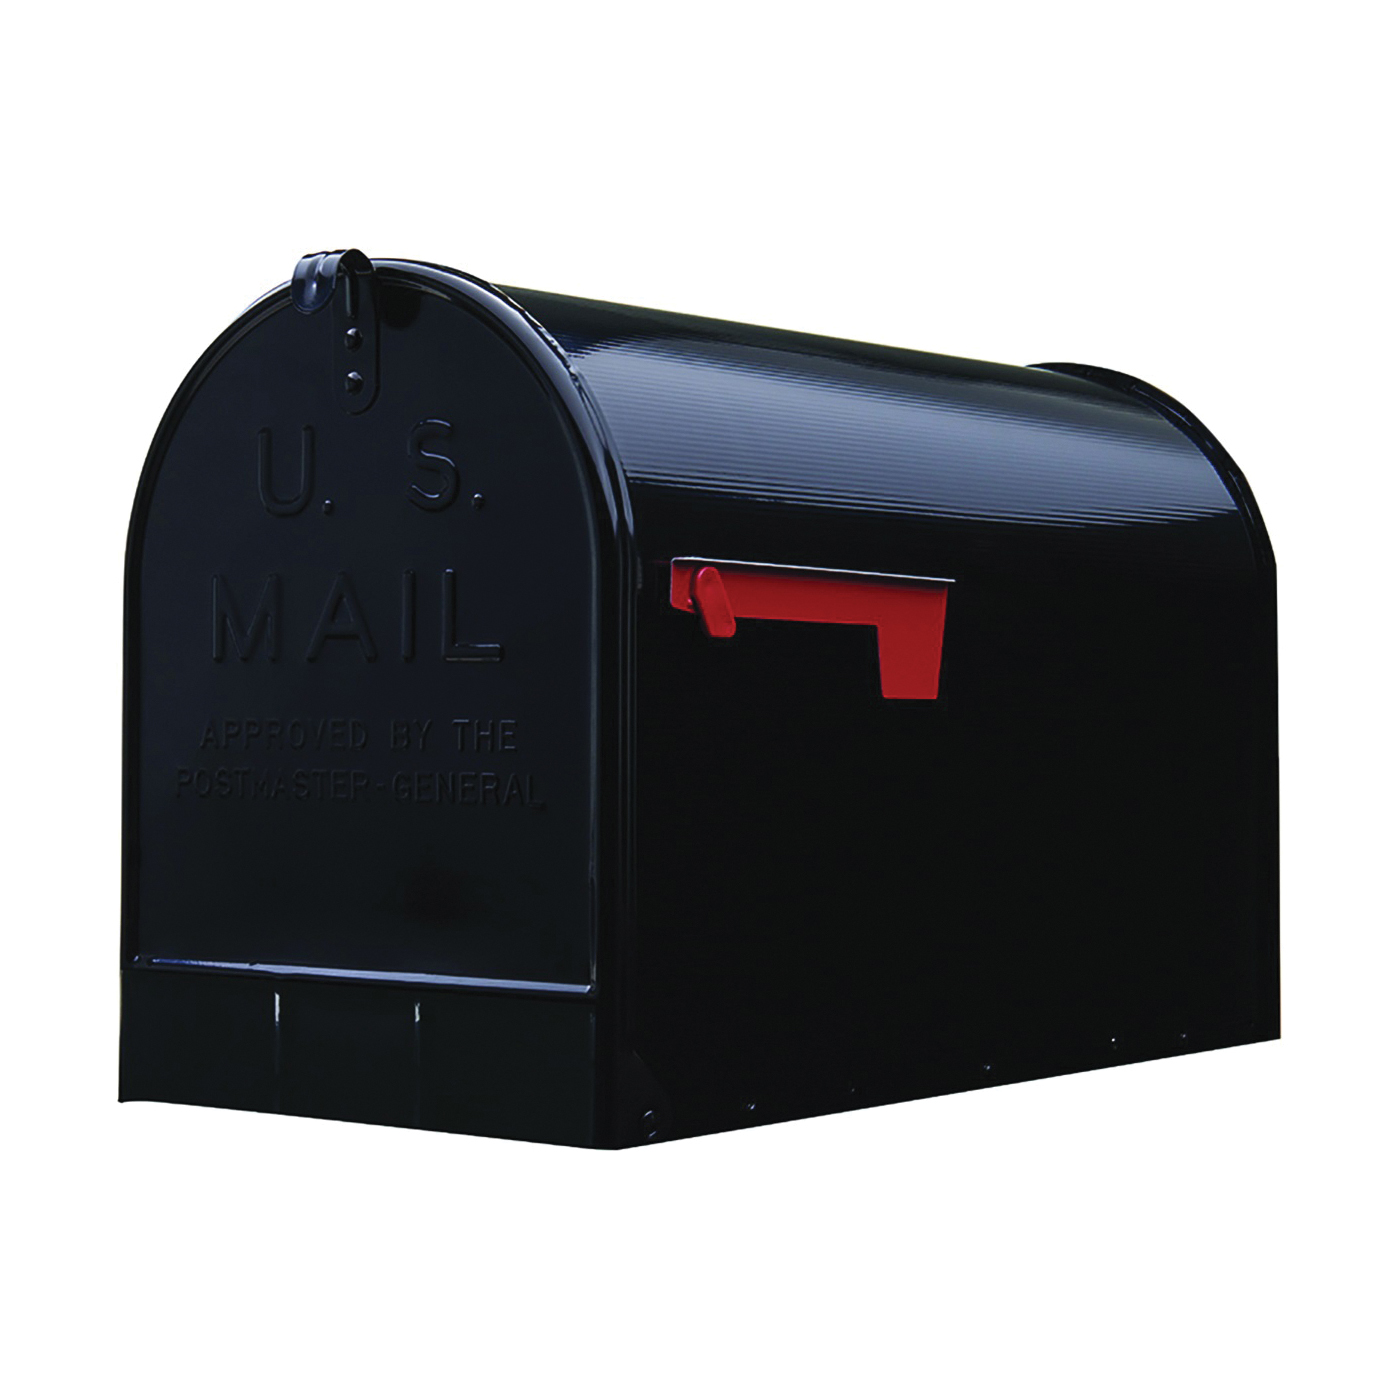 Picture of Gibraltar Mailboxes ST200B00 Rural Mailbox, 3175 cu-in Capacity, Galvanized Steel, Powder-Coated, 11.7 in W, Gray